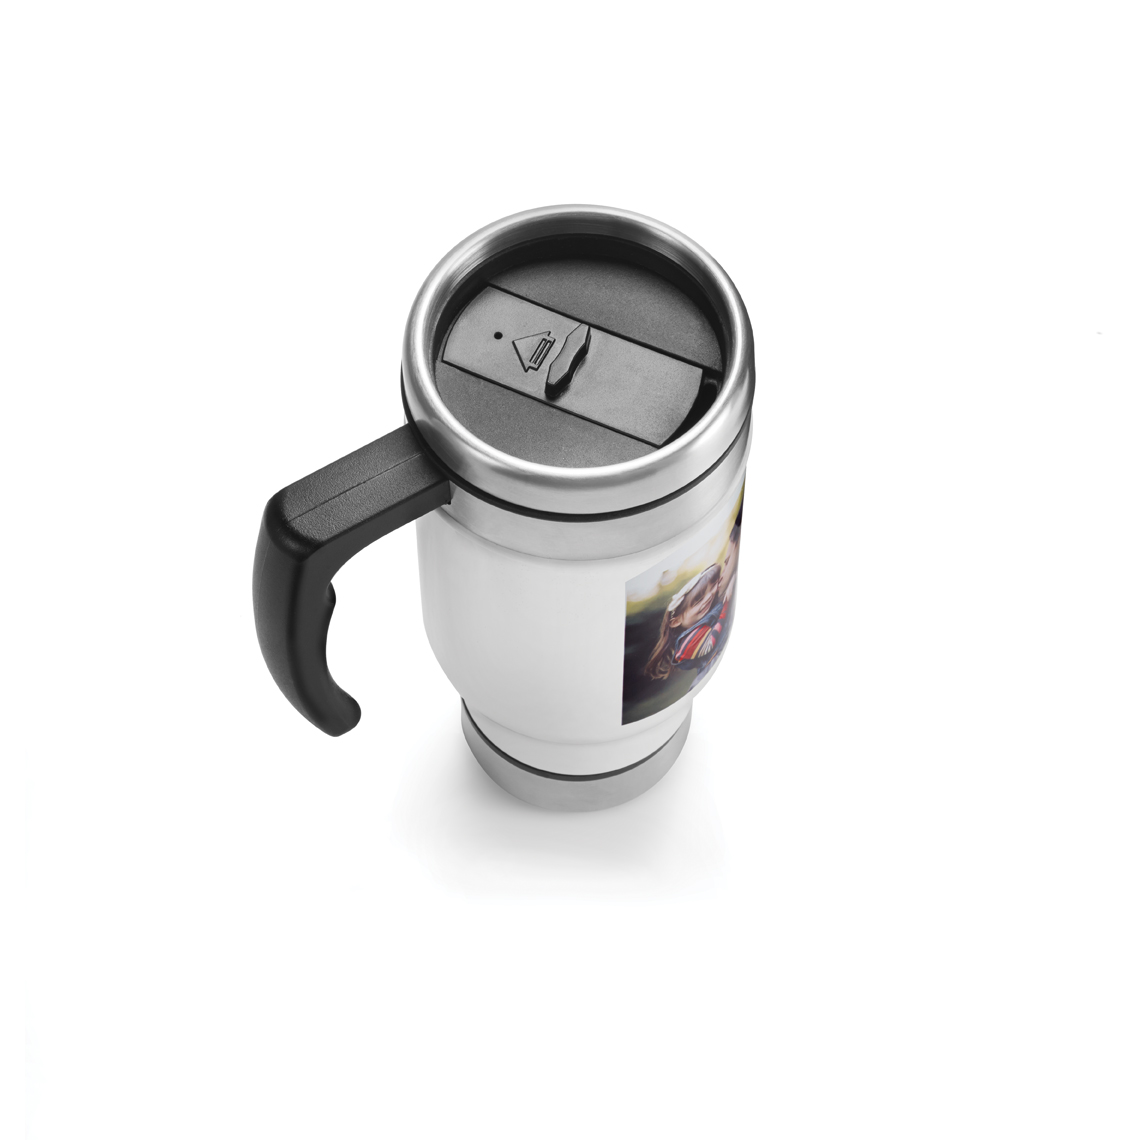 13 oz steel travel mug